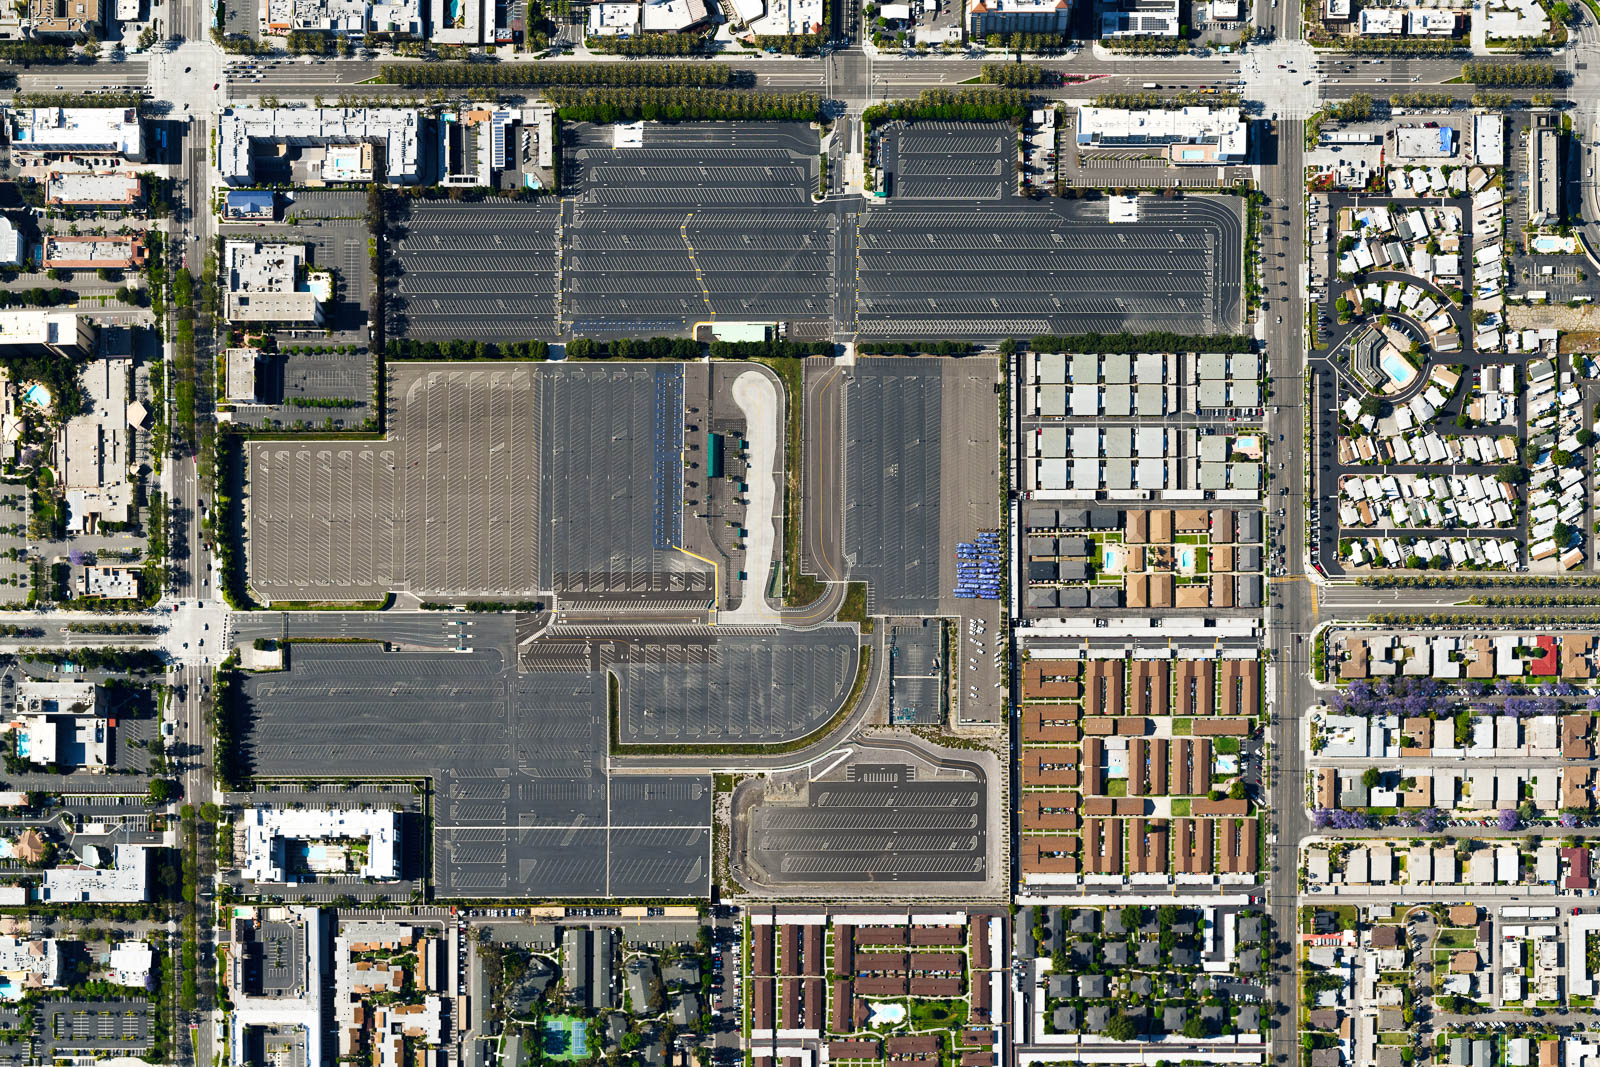 Anaheim Disneyland's parking lot stands vacant in the midst of the COVID-19 pandemic (May 2020)